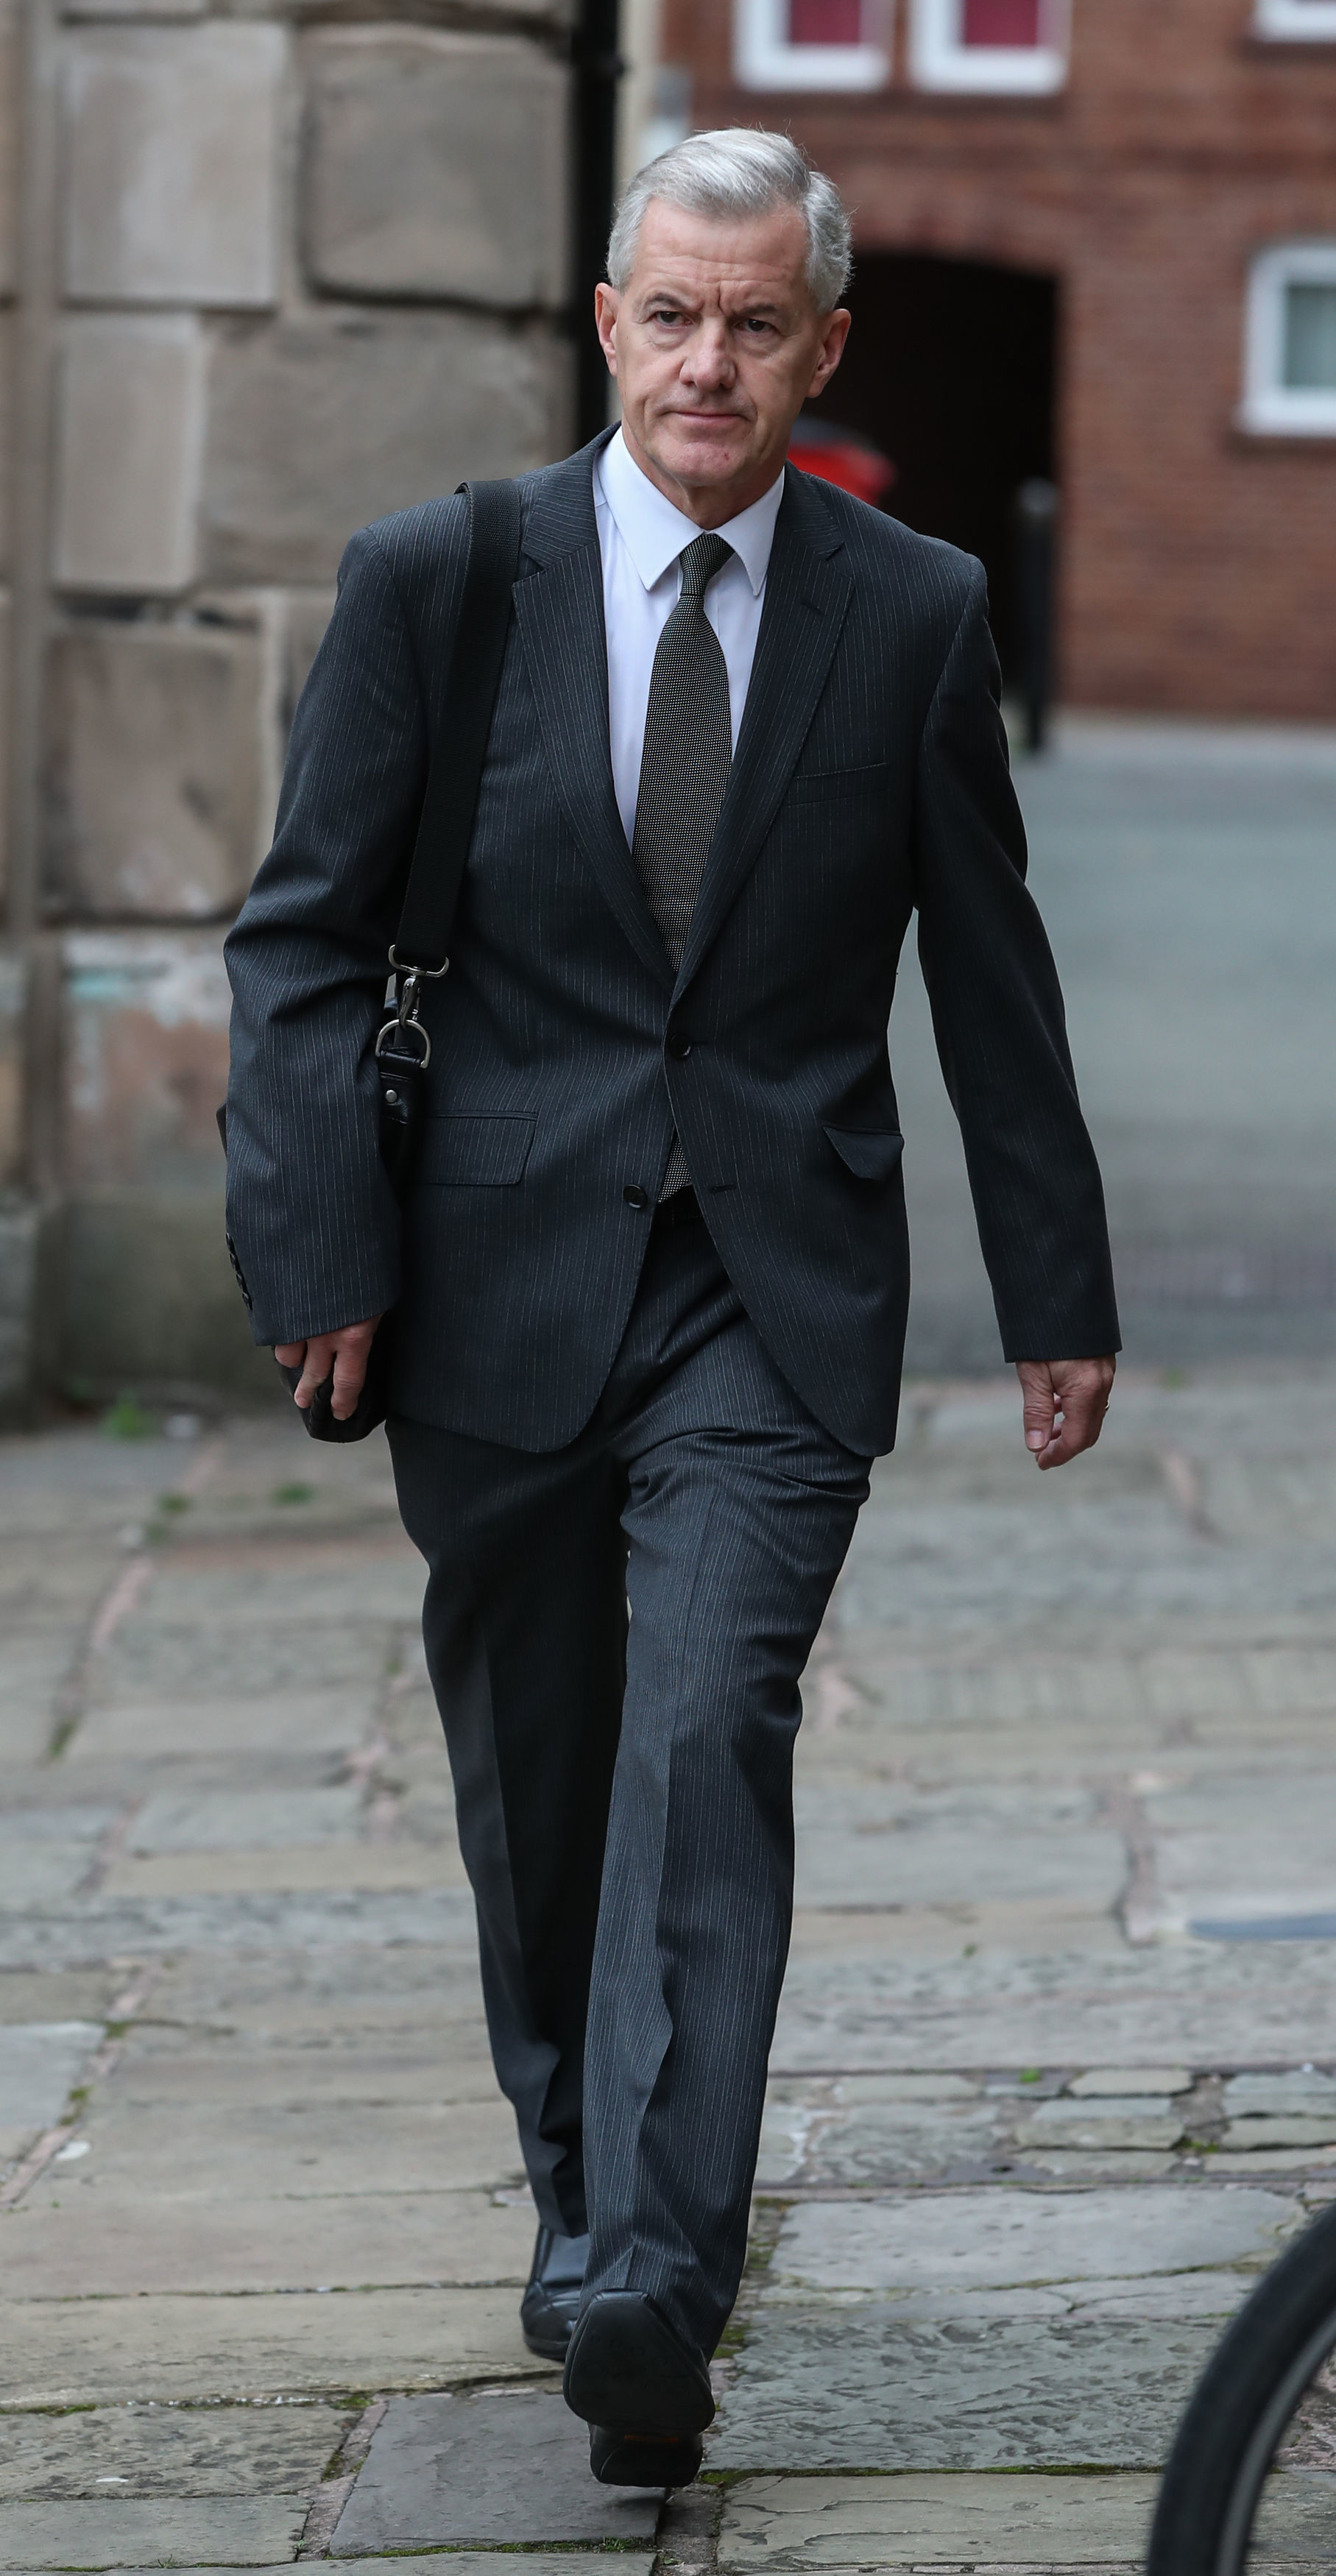 Paul McCann, a former football coach at Crewe Alexandra, arrives at Chester Crown Court. Picture: Peter Byrne/PA Wire.